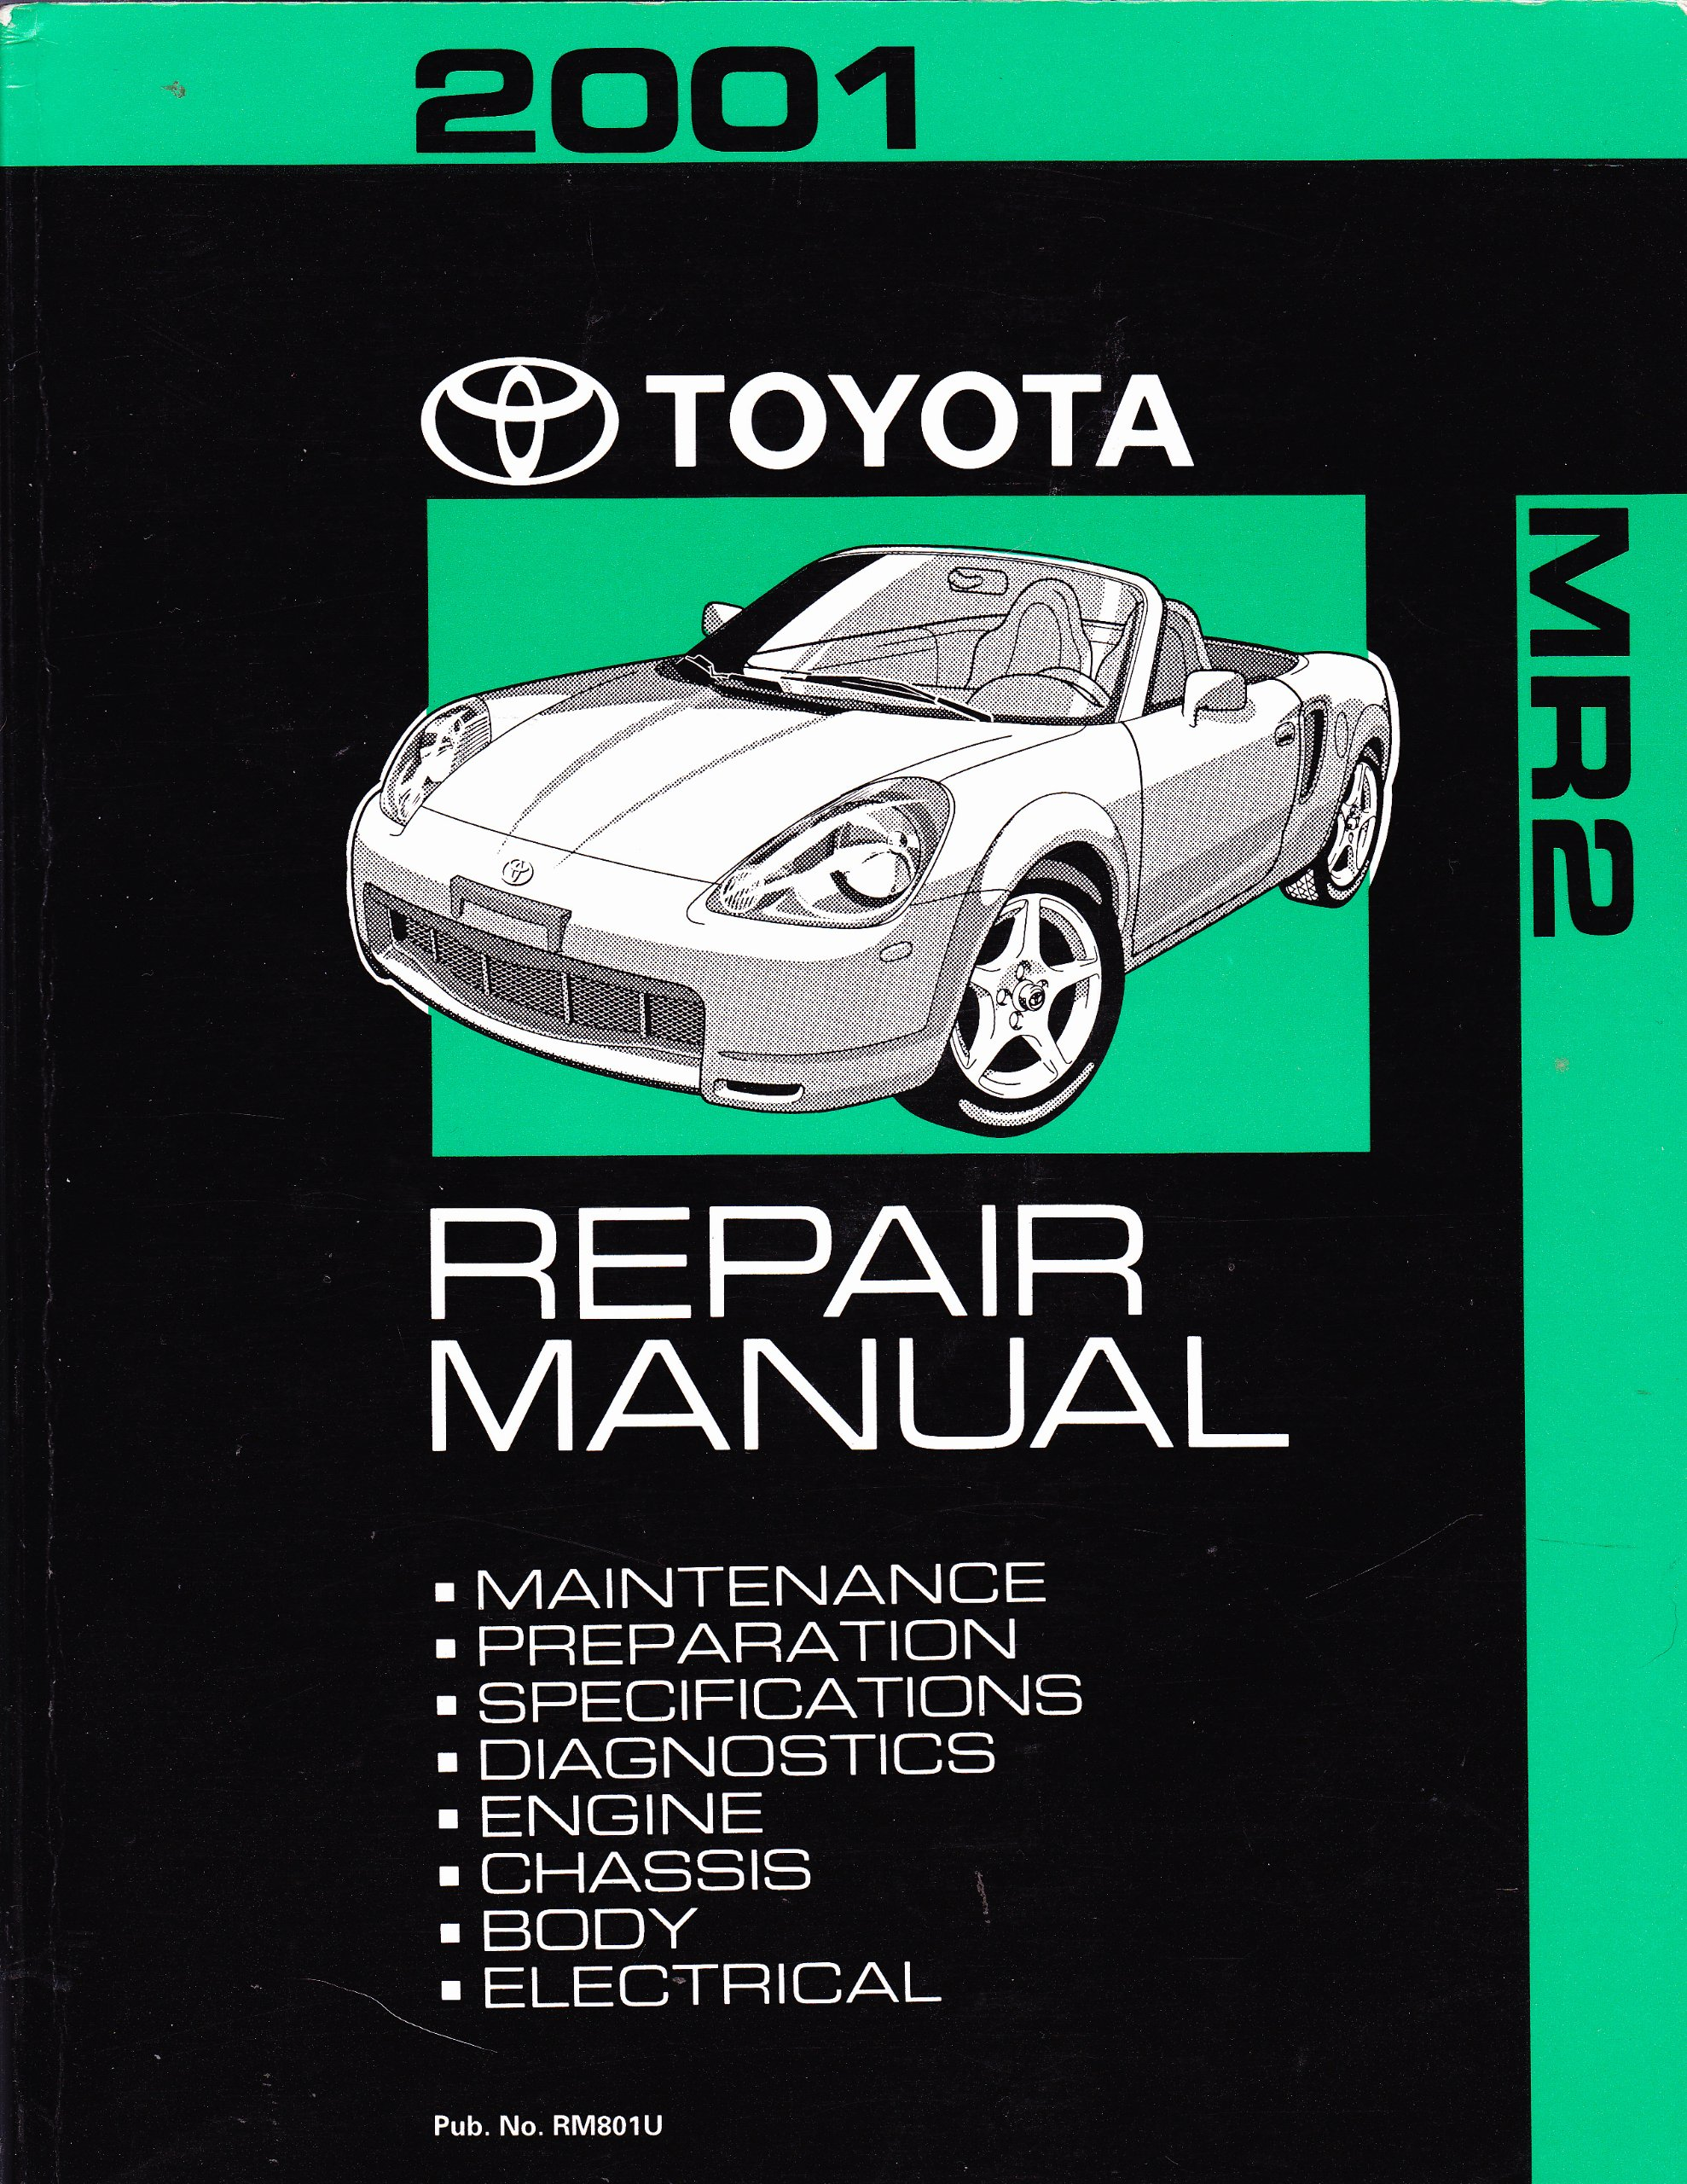 2001 toyota mr2 repair manual toyota amazon com books rh amazon com toyota  mr2 spyder repair manual toyota mr2 spyder owners manual